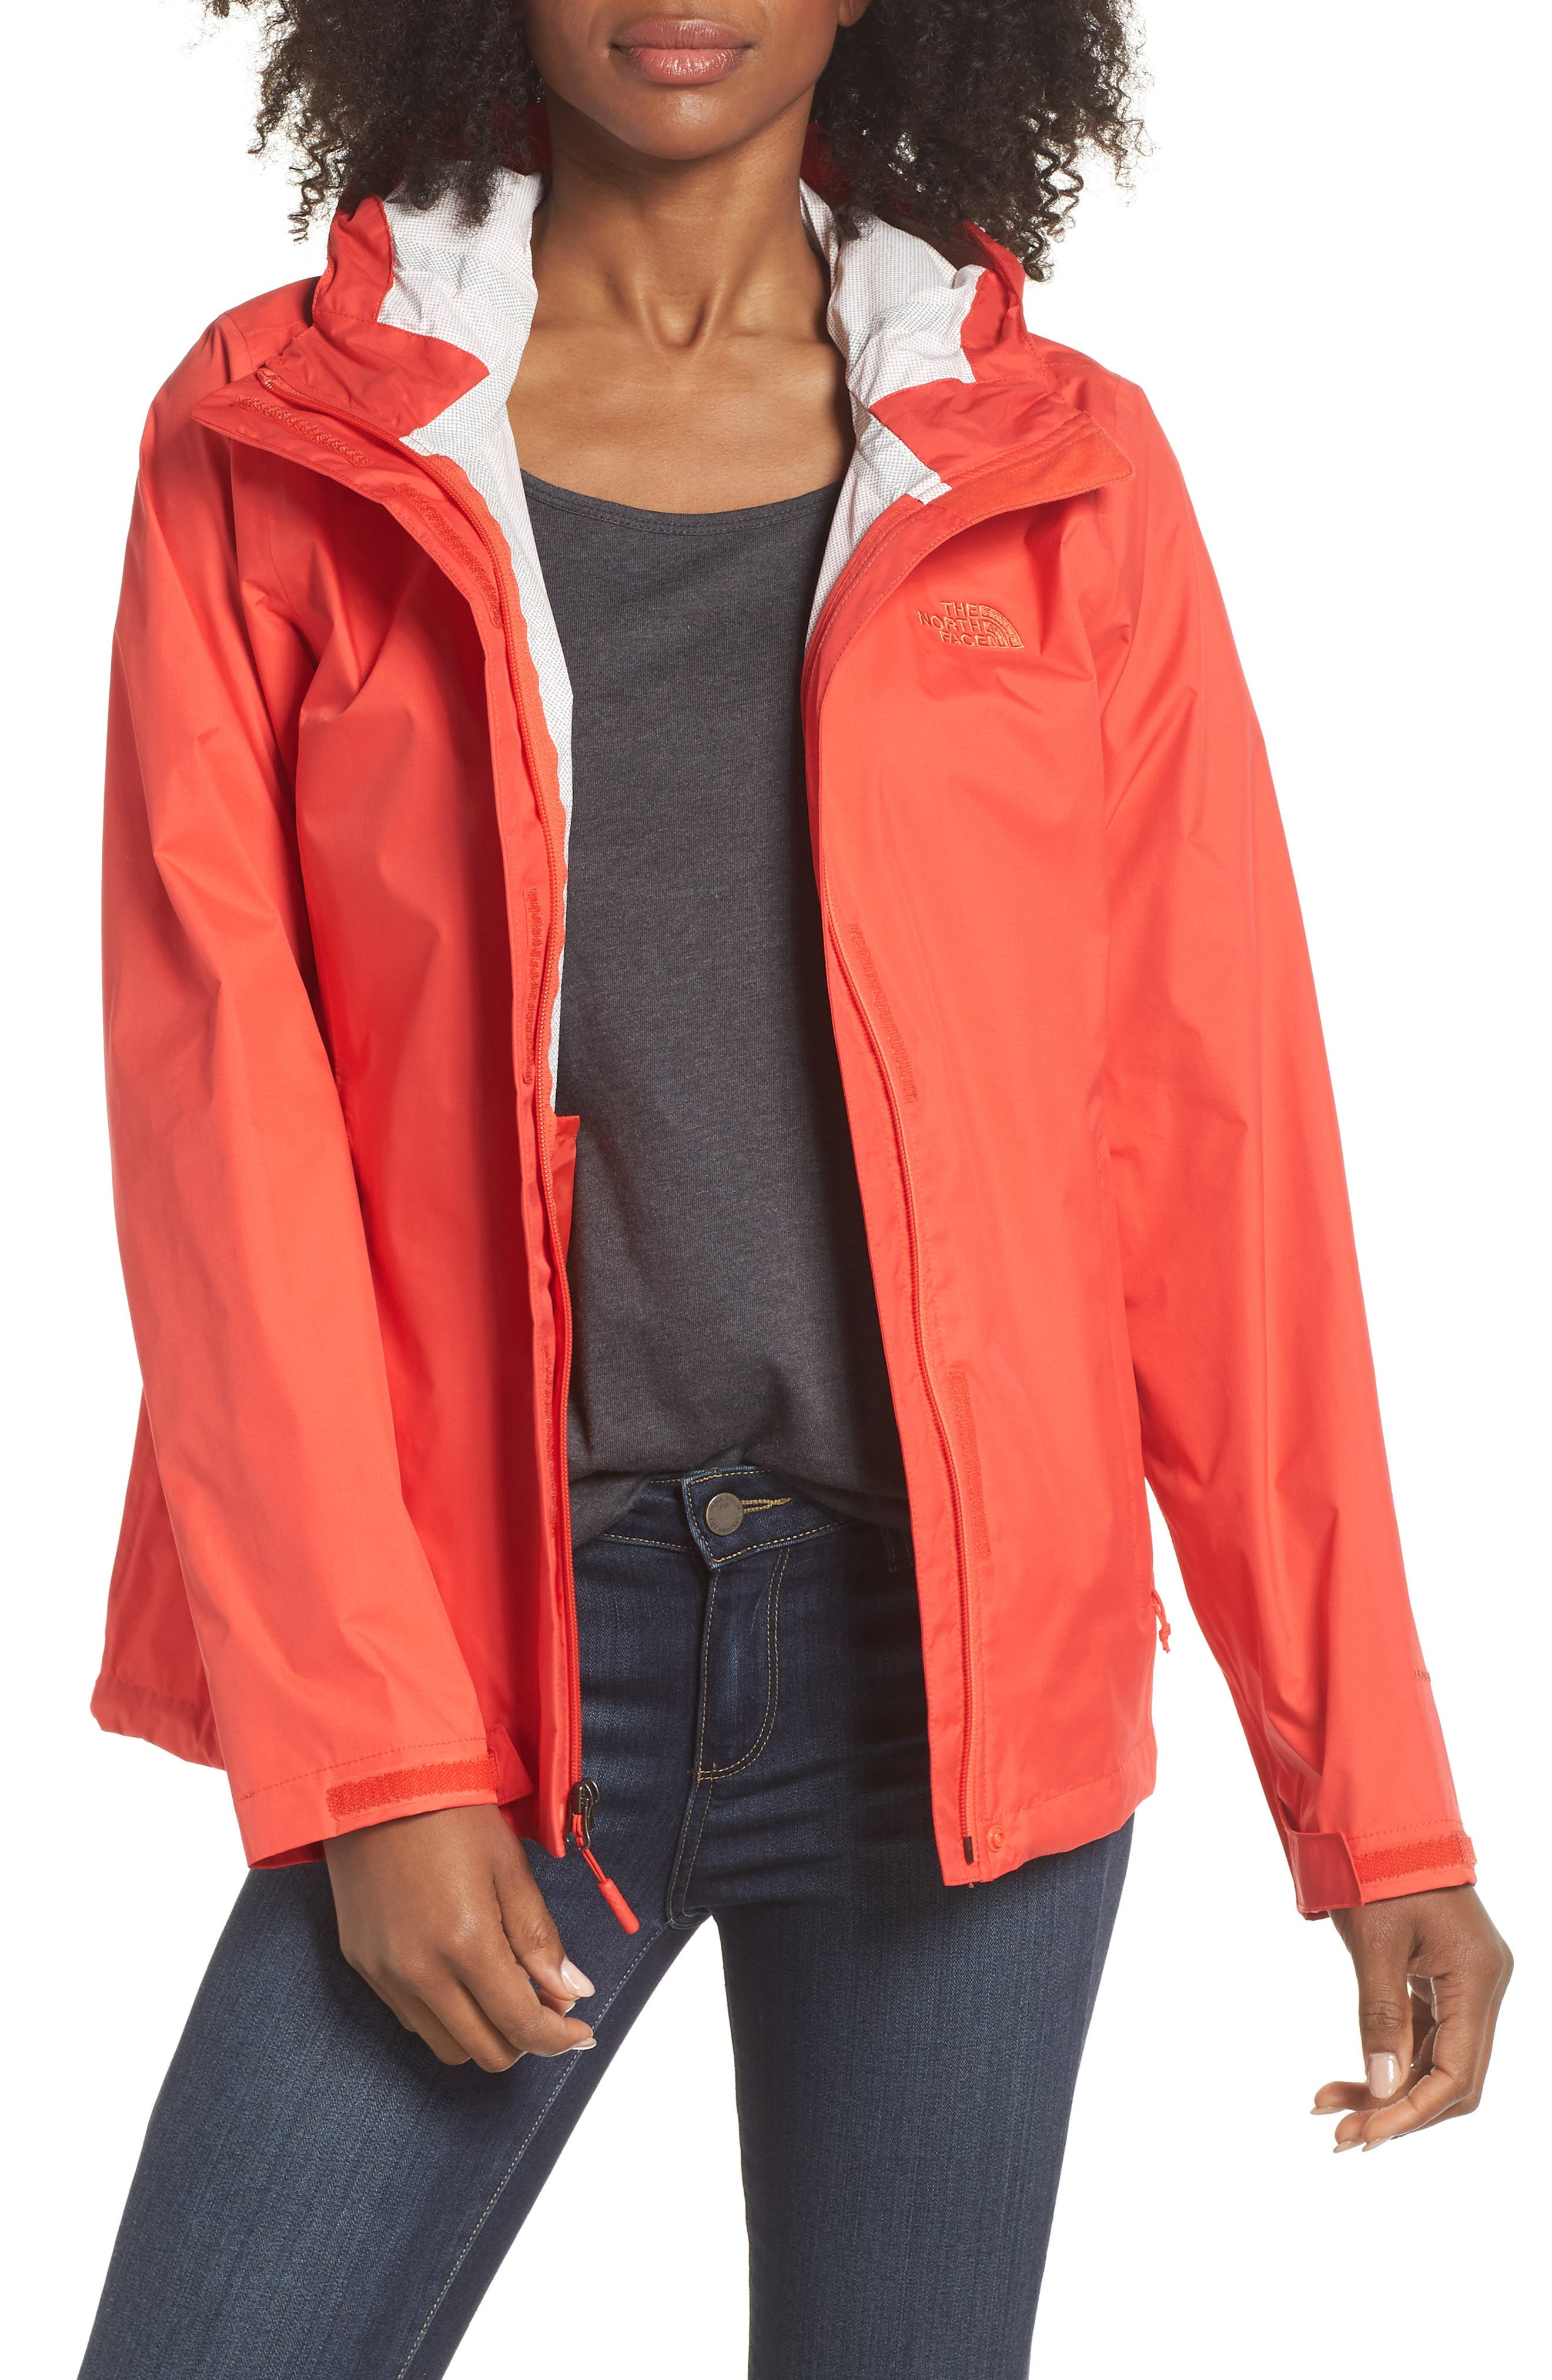 THE NORTH FACE Venture 2 Waterproof Jacket, Main, color, JUICY RED